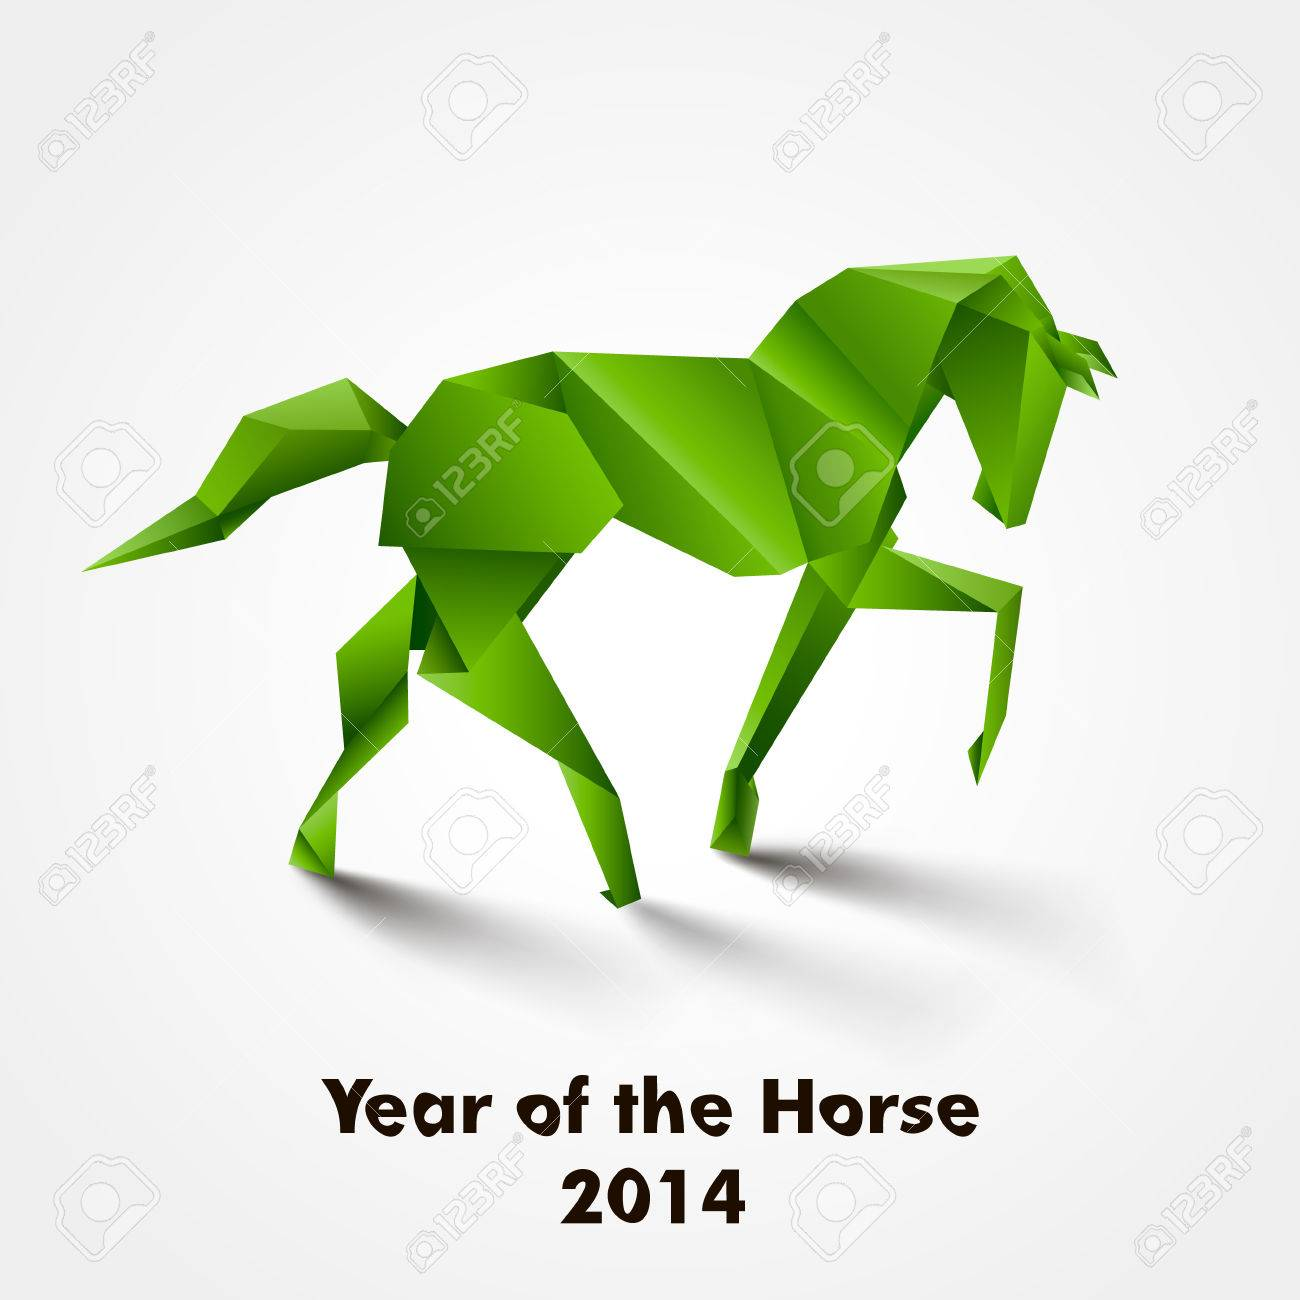 Year Of The Horse Design Green Origami Stock Vector